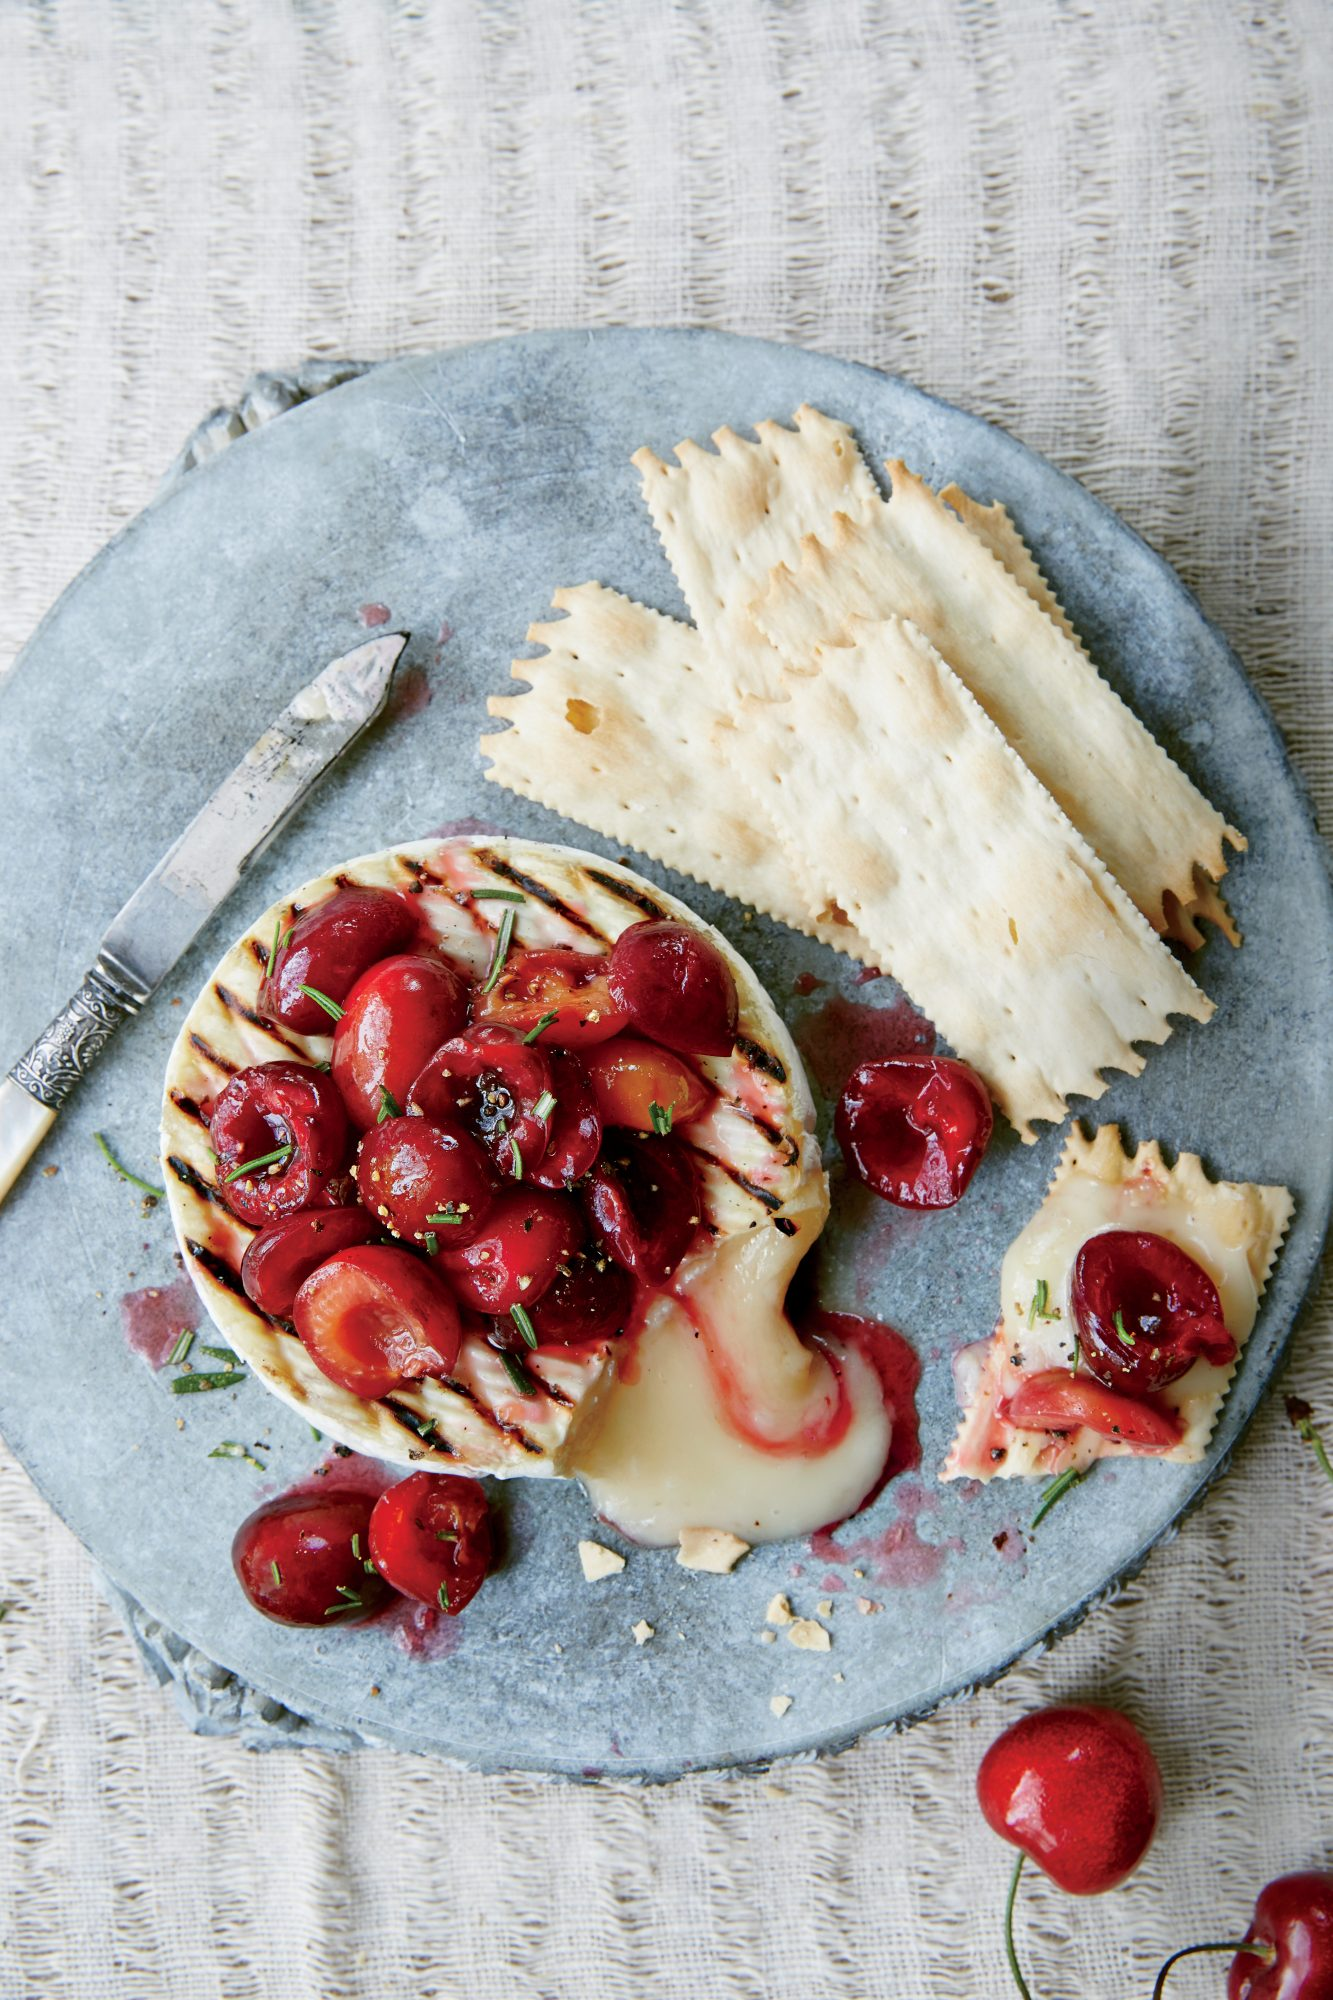 Grilled Camembert with Macerated Cherries and Rosemary